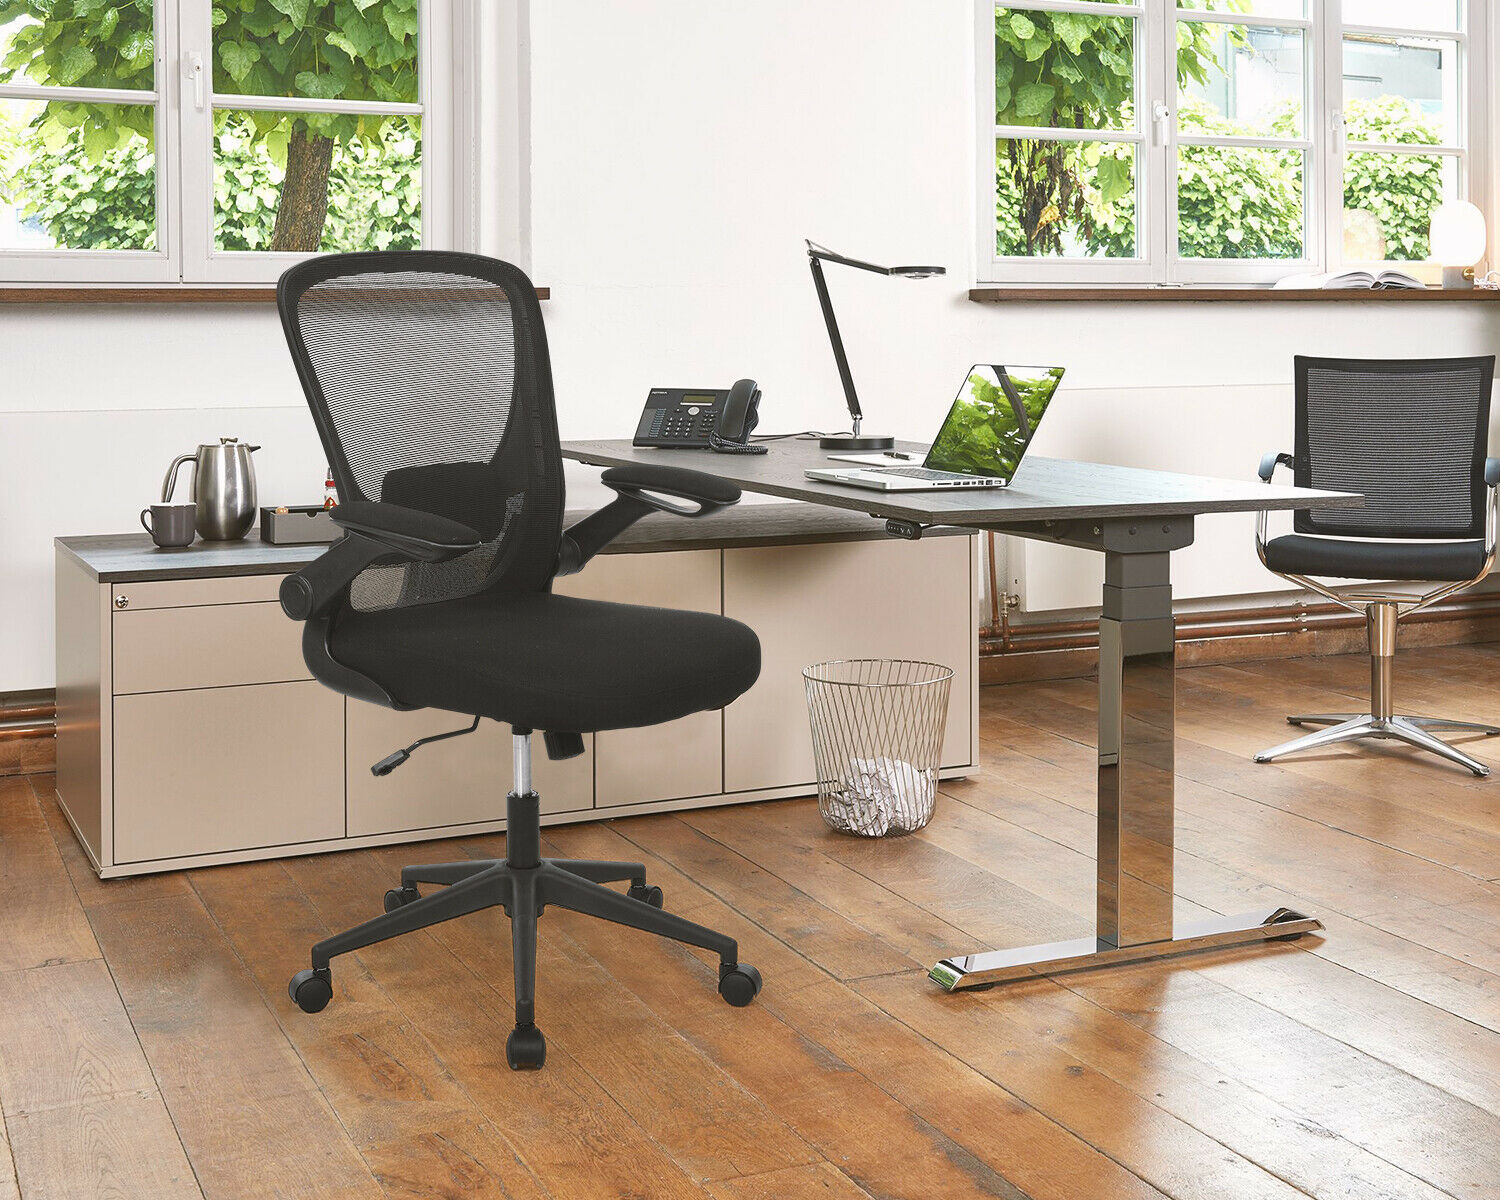 Office Chair Desk Chair Computer Chair with Lumbar Support Flip-up Arms Swivel Business & Industrial